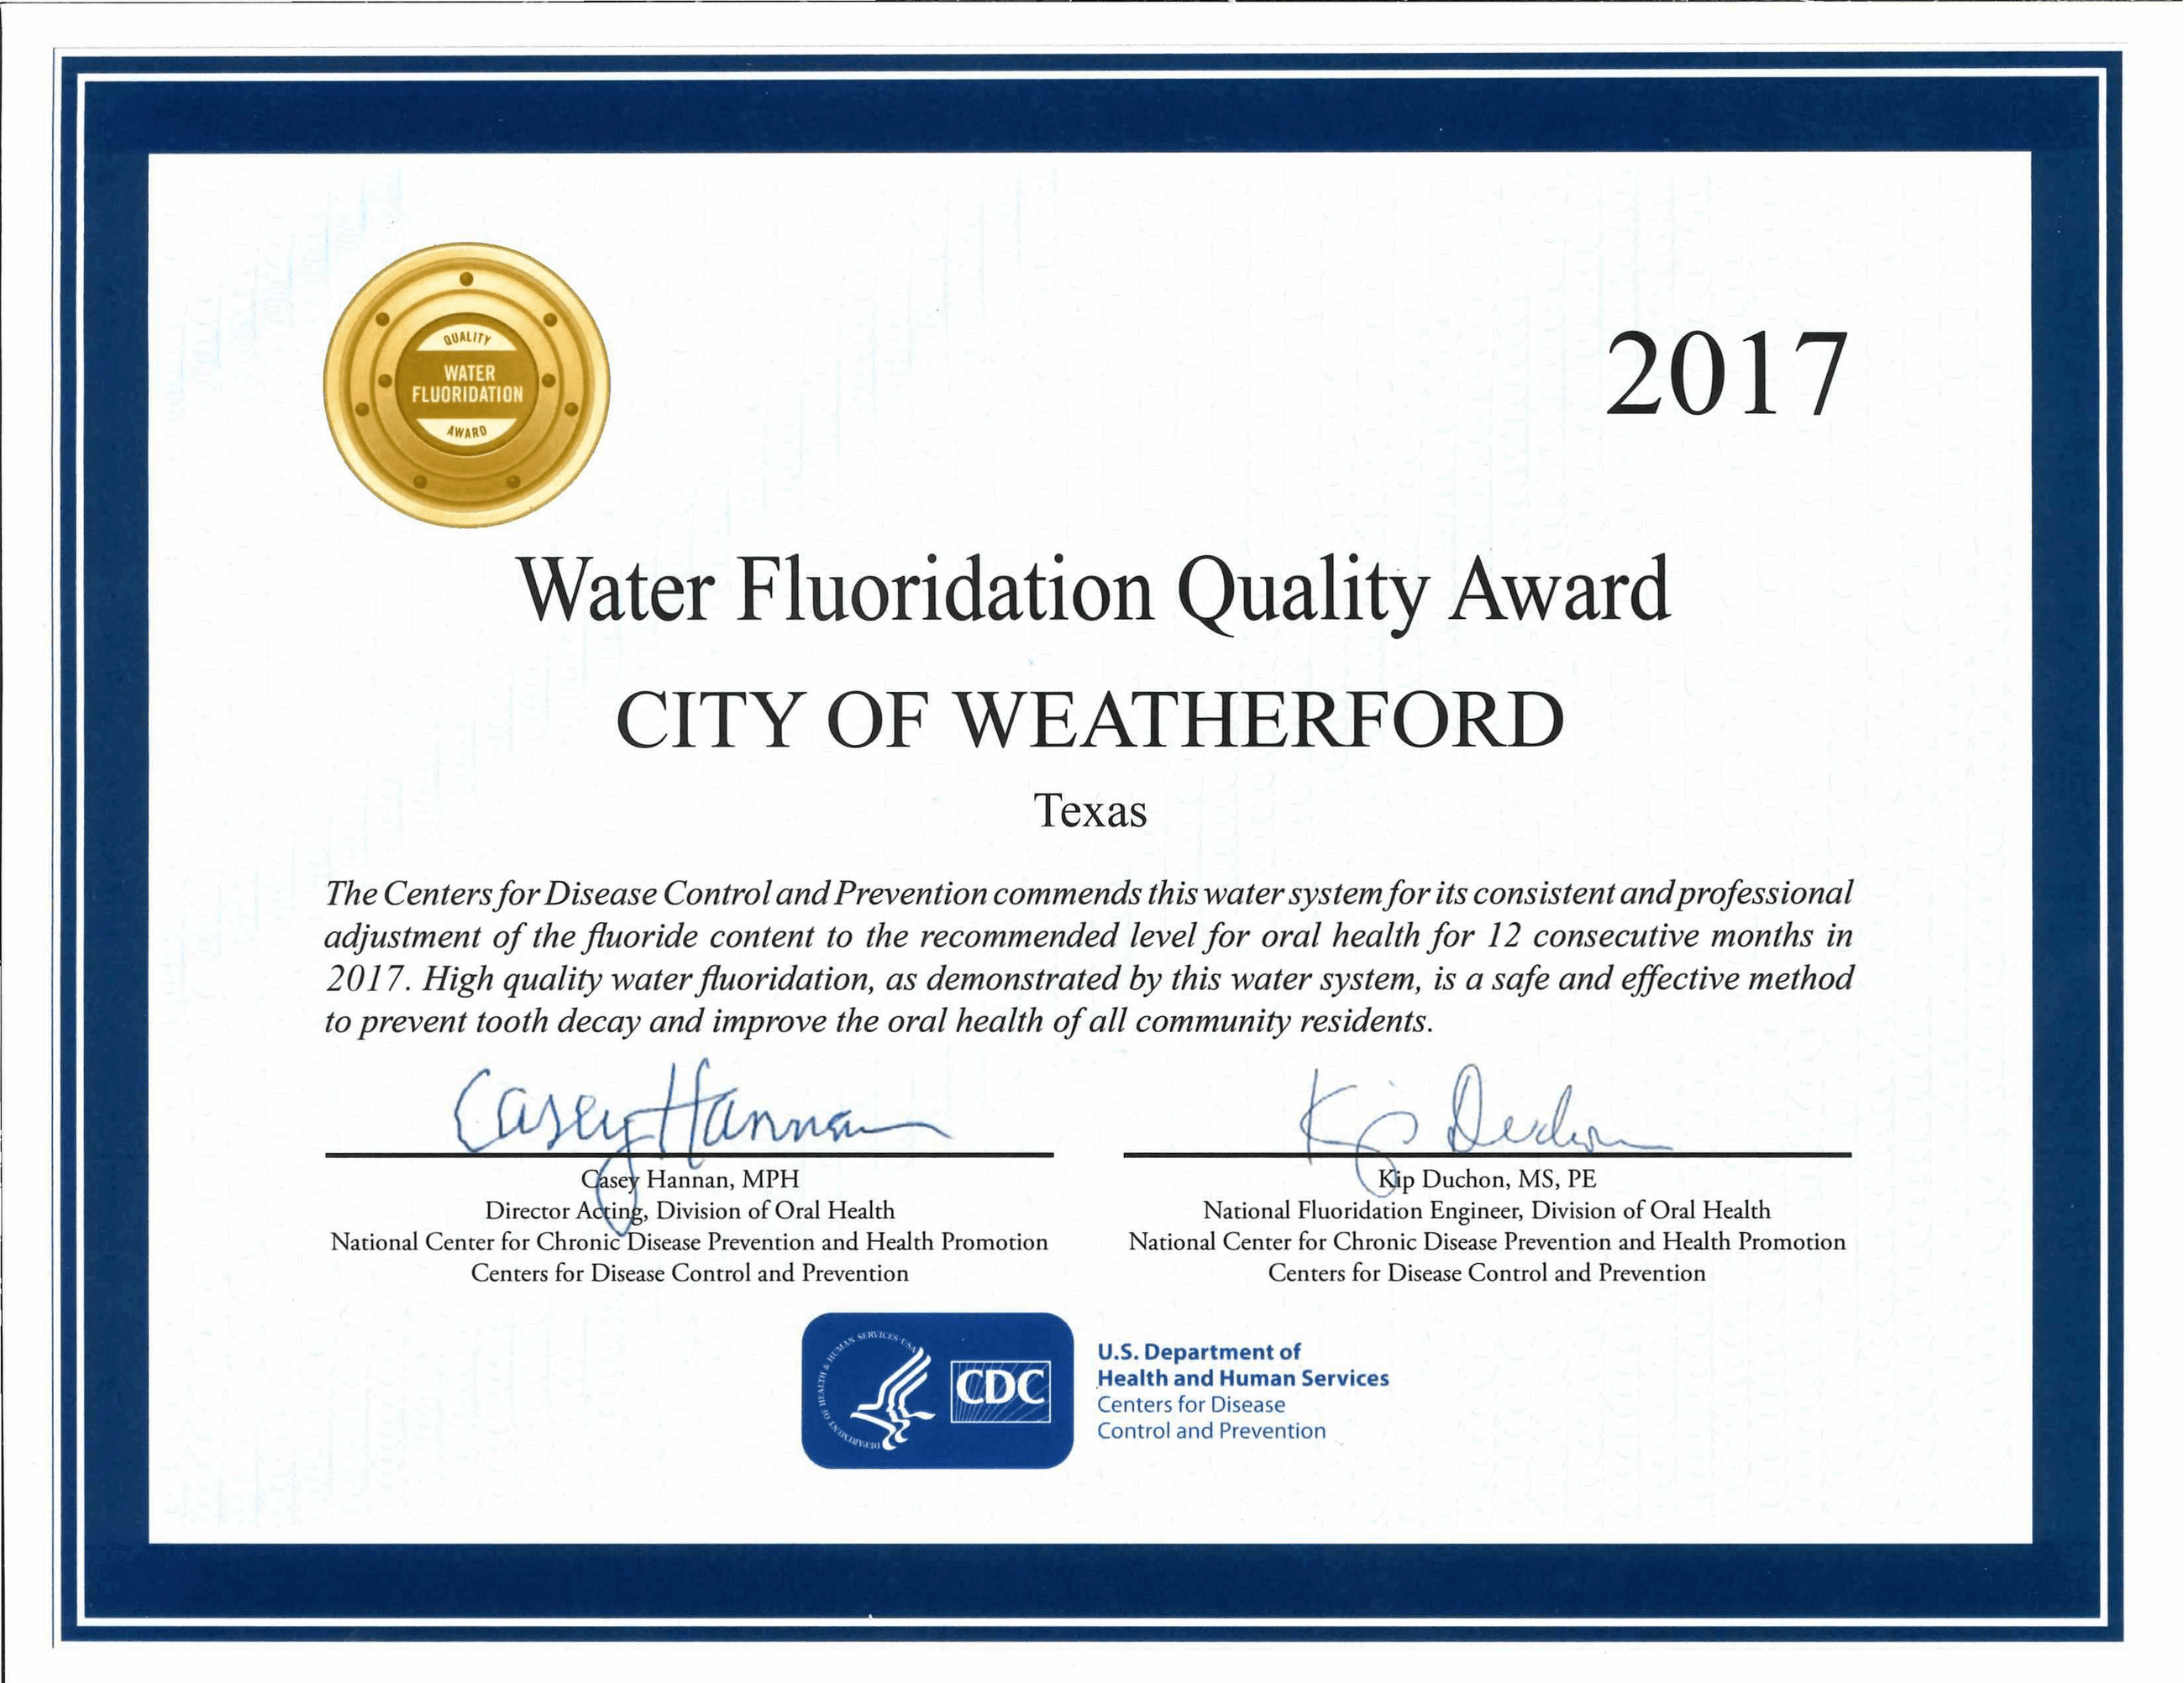 Water Fluoridation Quality Award